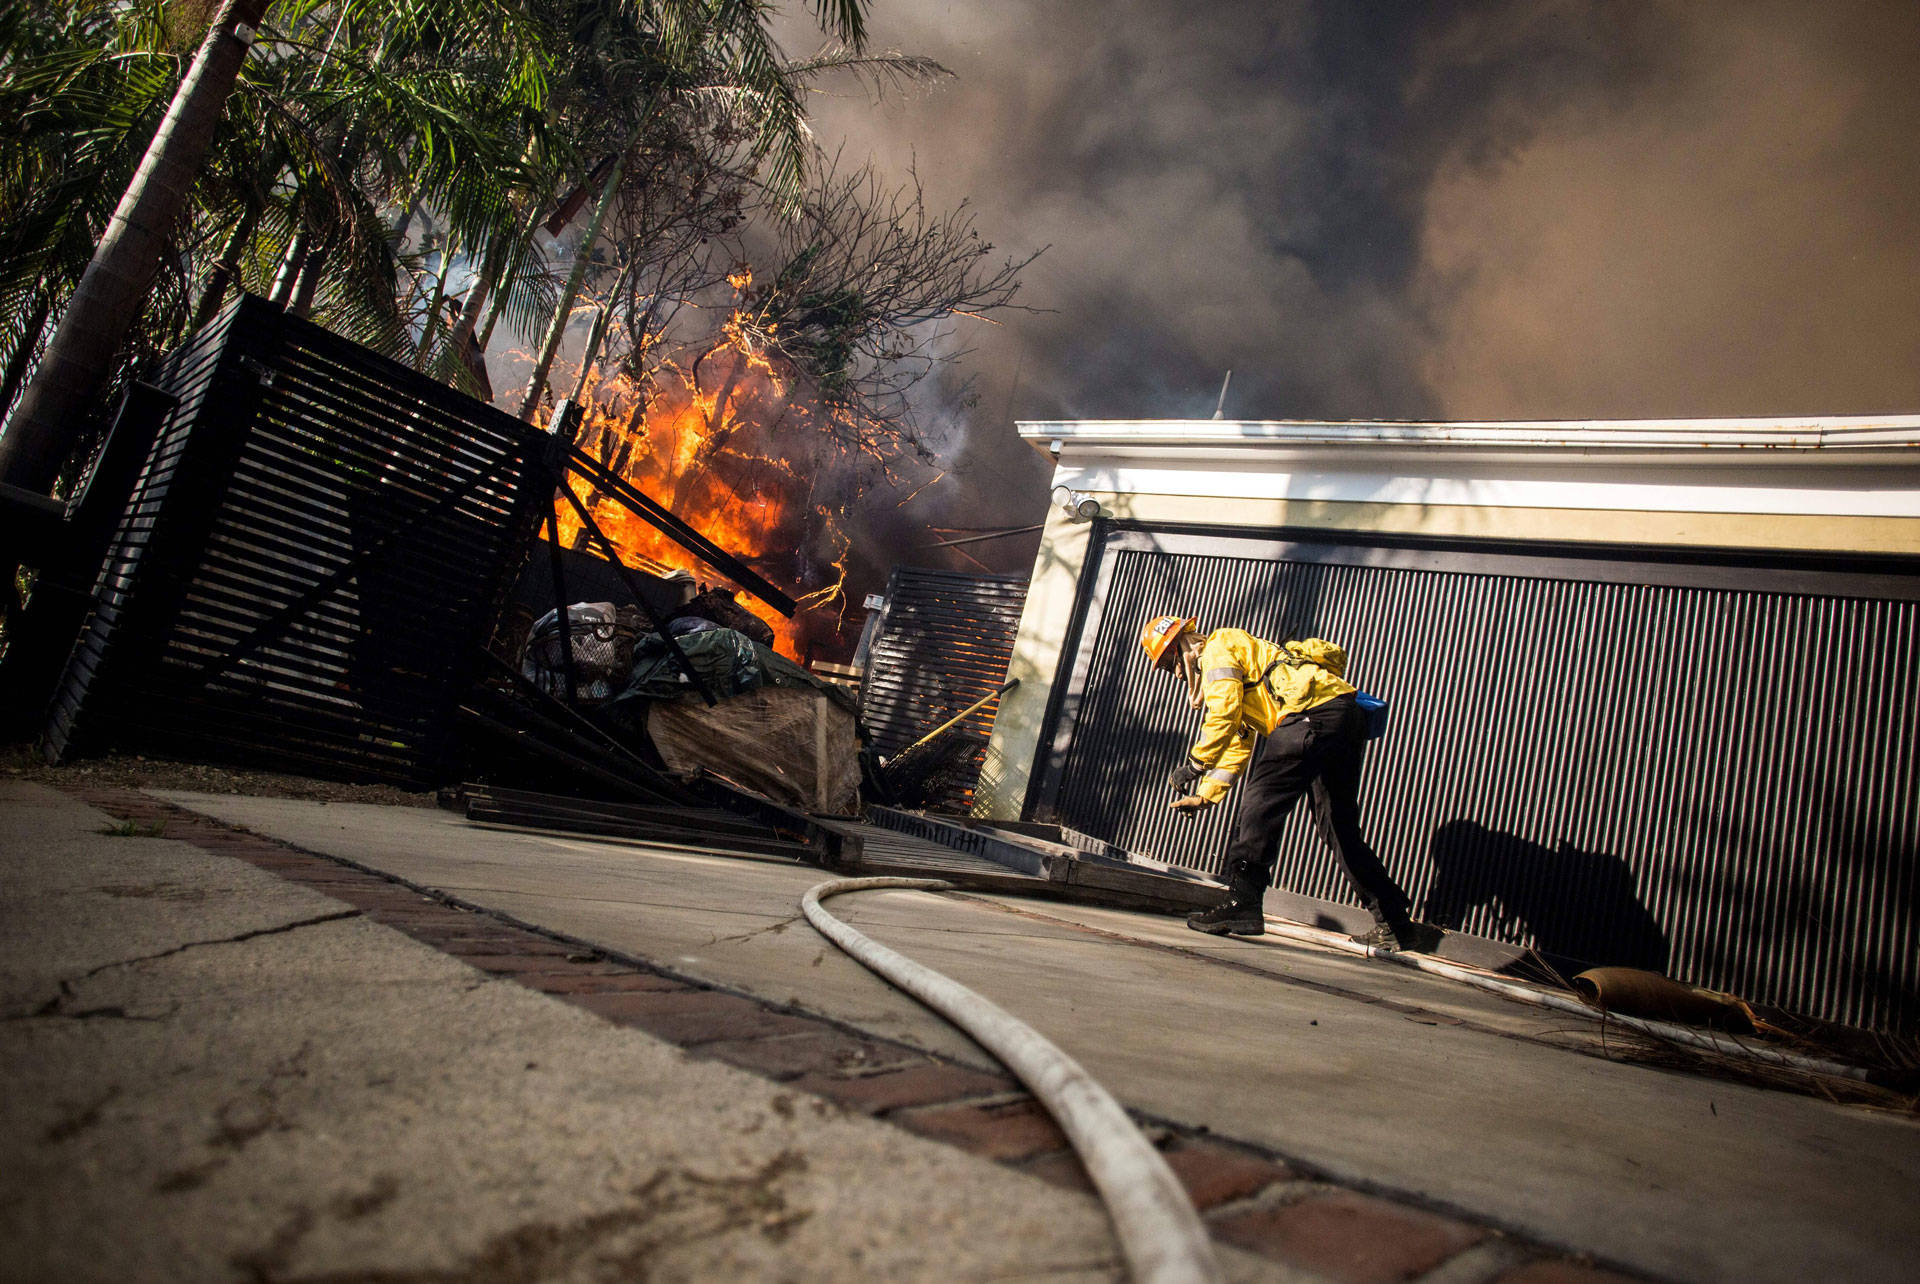 Firefighters work to save burning houses along Linda Flora Drive during the Skirball Fire in Los Angeles on Dec. 6, 2017.  KYLE GRILLOT/AFP/Getty Images